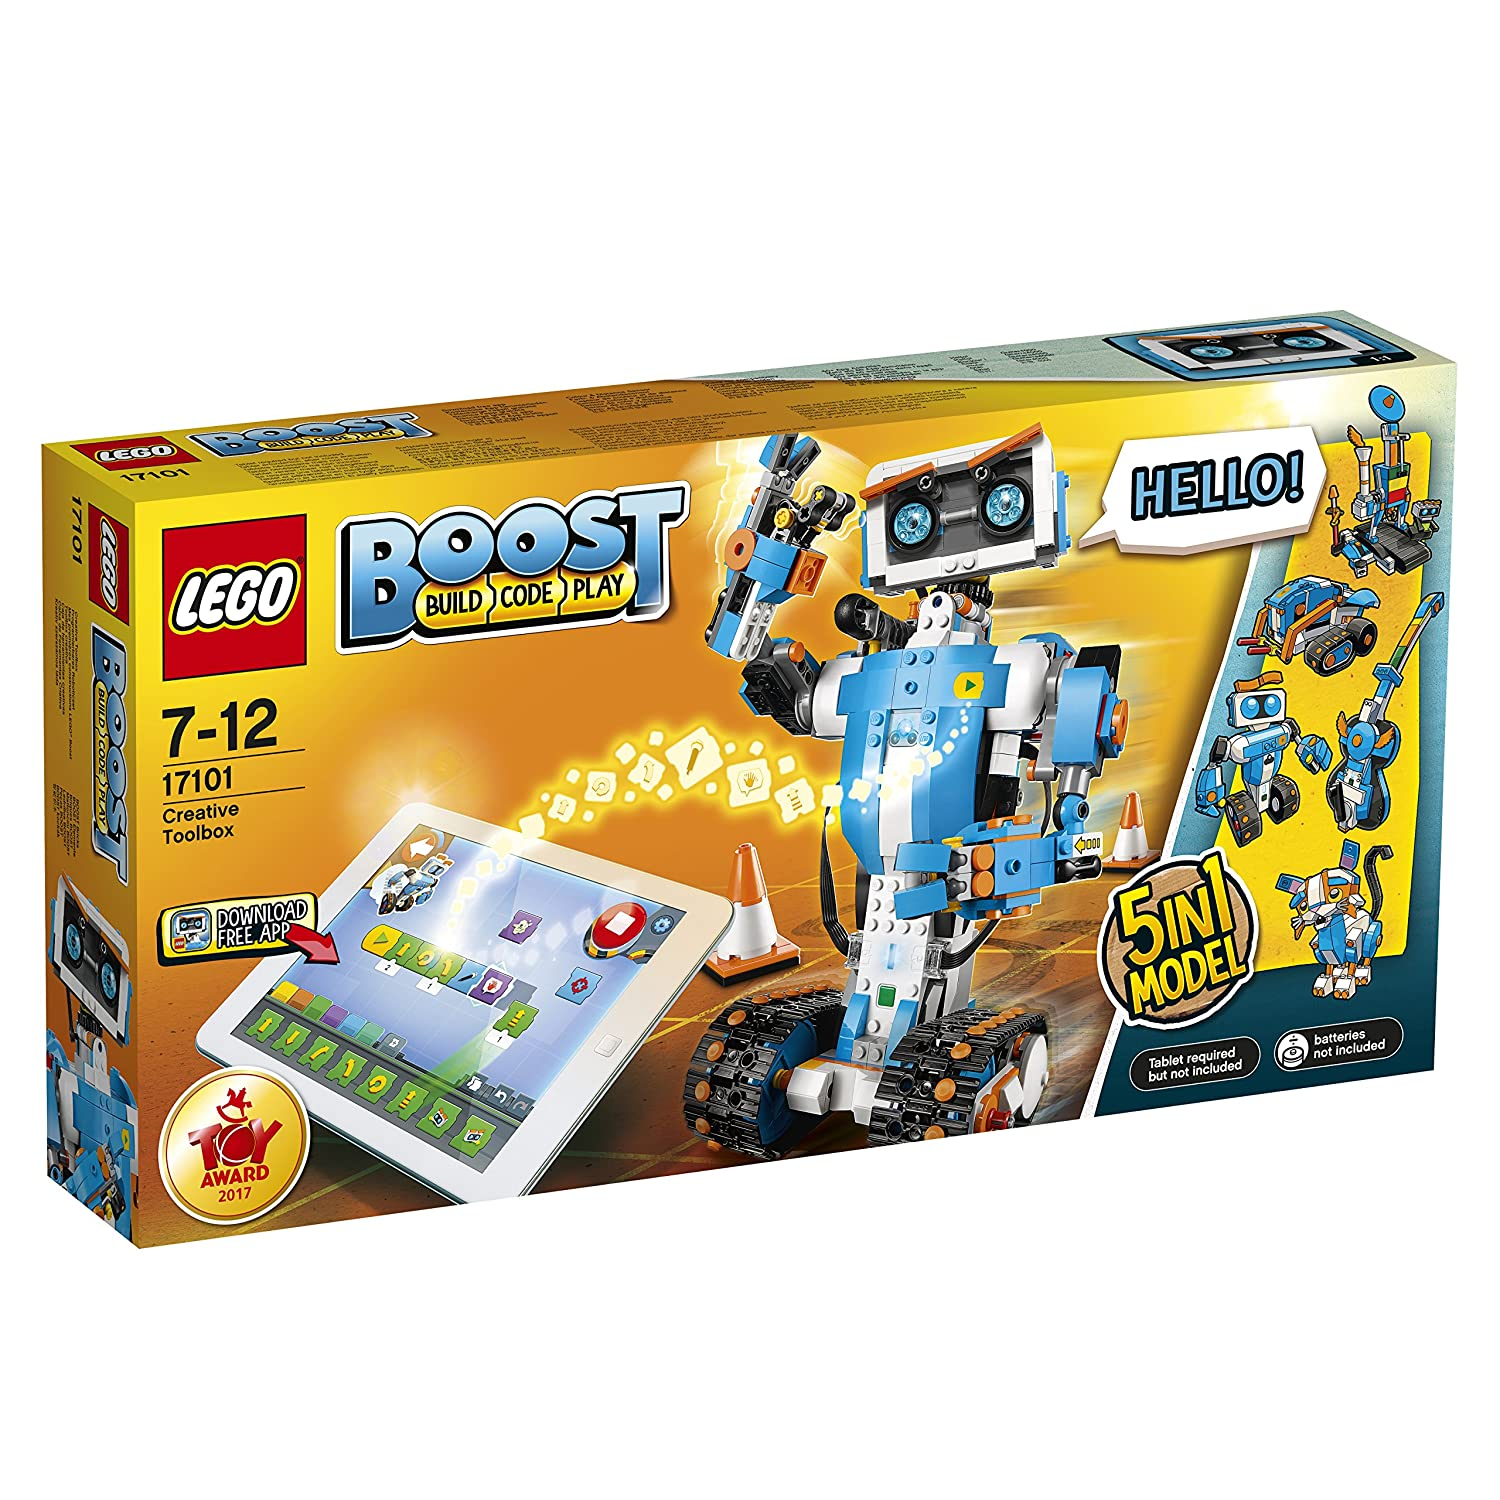 You can buy the LEGO Boost Creative Toolbox here